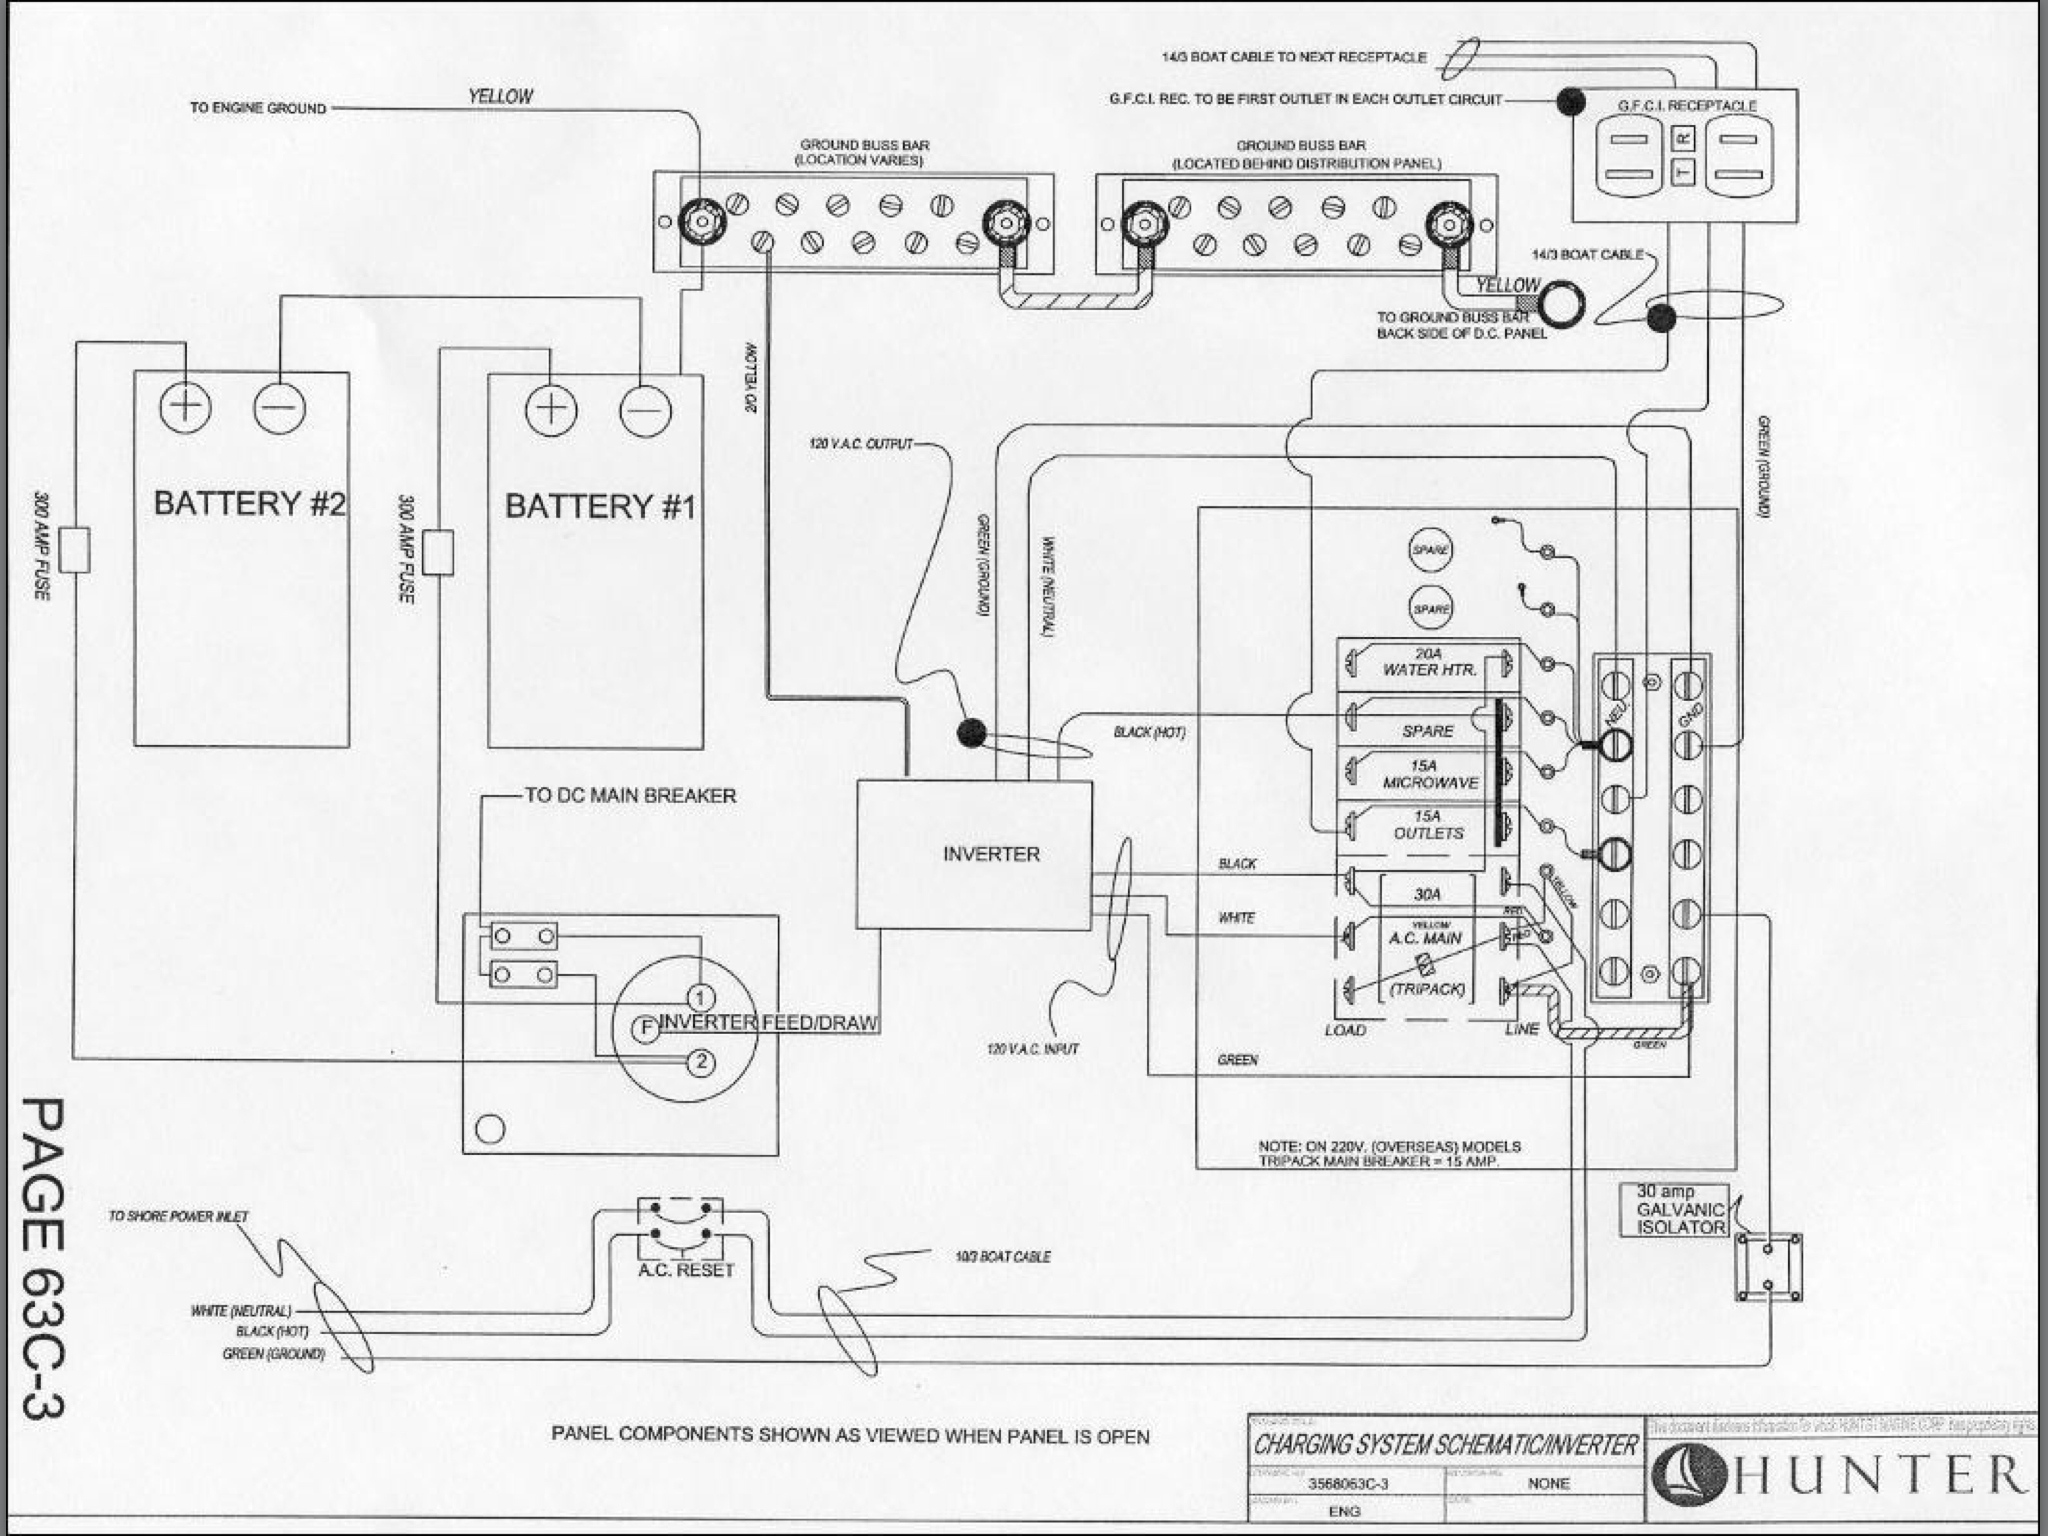 Promariner Battery Isolator Wiring Diagram 42 For A Galvanic Trips Dockside Breaker Sailboatowners Com Forums At Cita